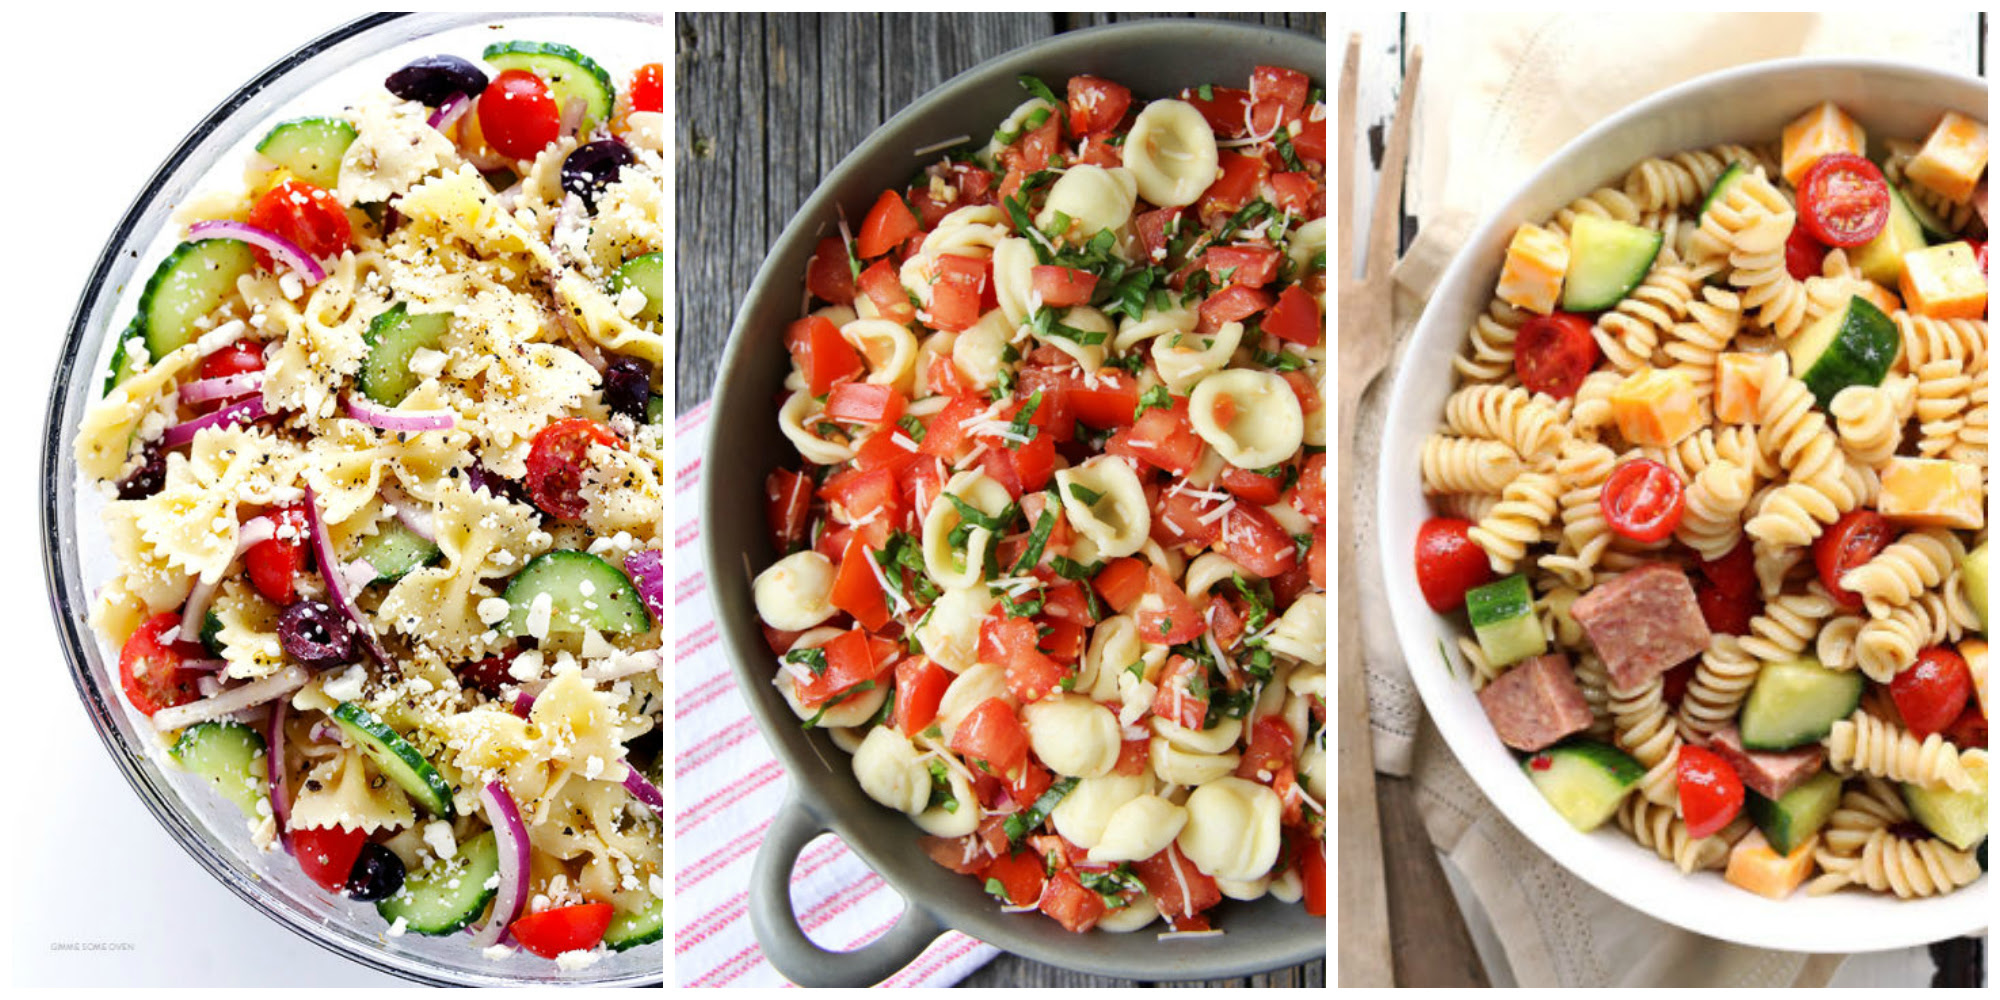 30 Easy Pasta Salad Recipes - Best Cold Pasta Dishes